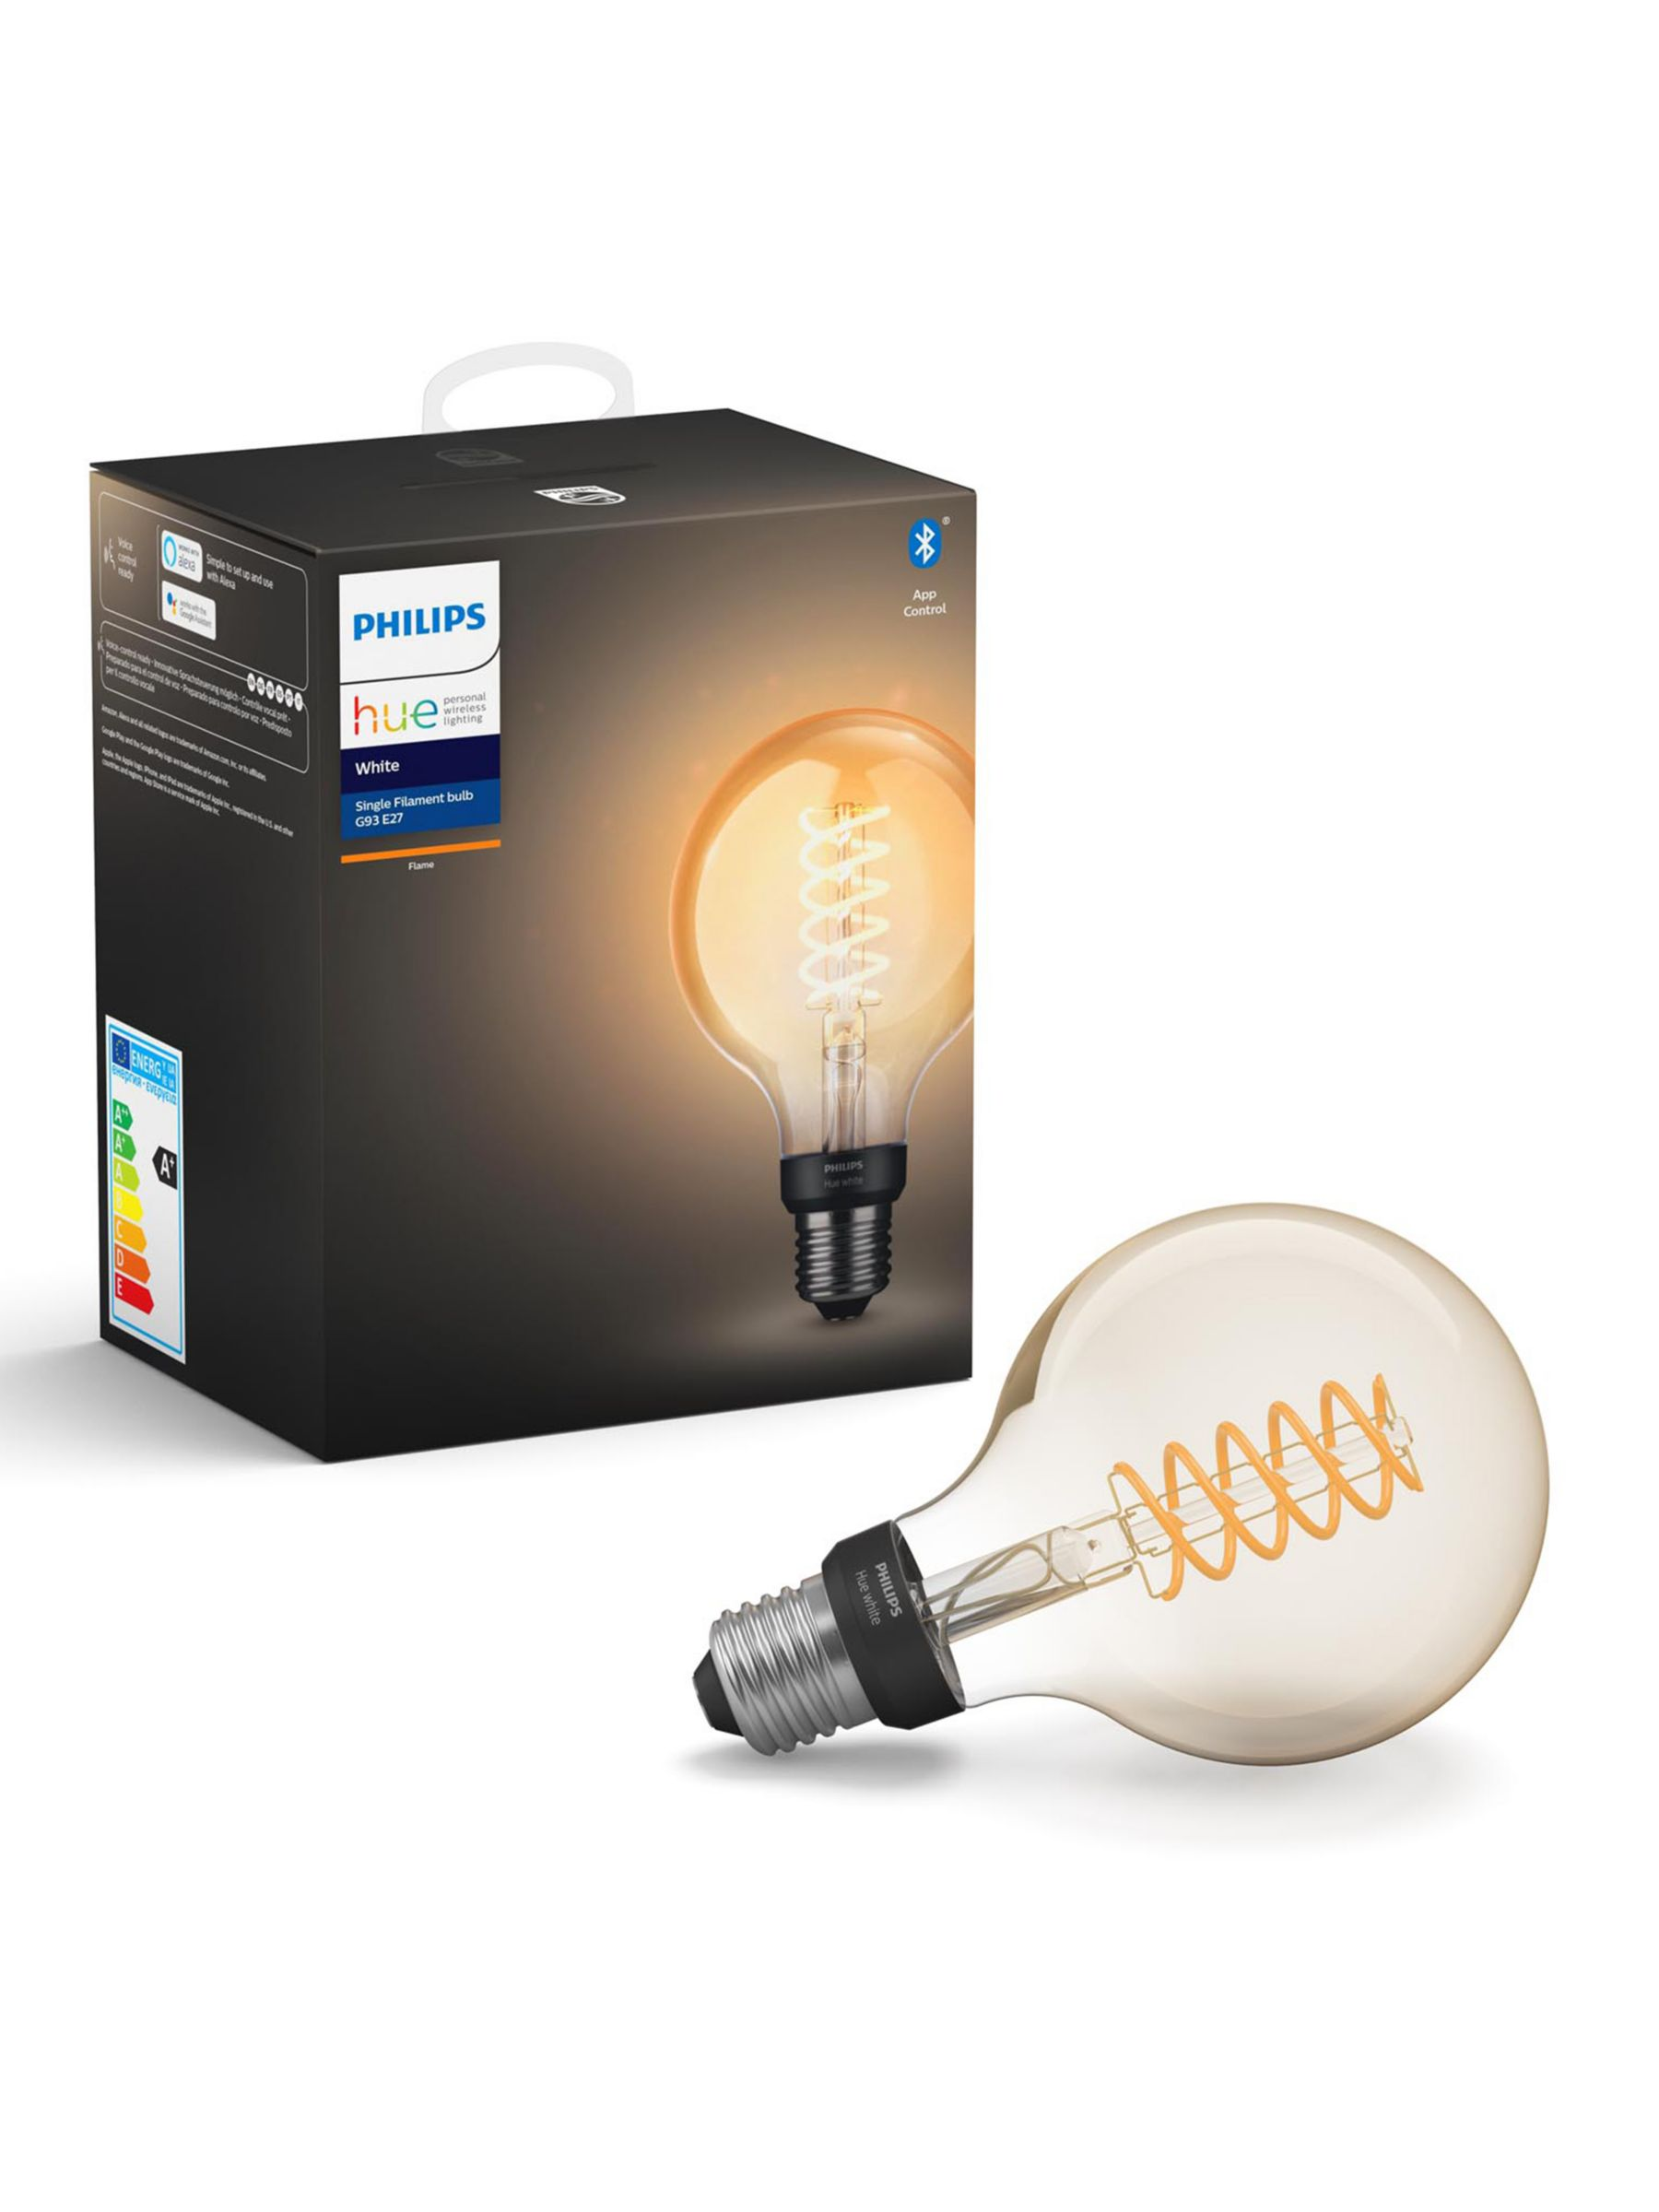 Philips Philips Hue White Ambiance Wireless Lighting 7W ES LED Dimmable Globe Filament Bulb, G93 E27